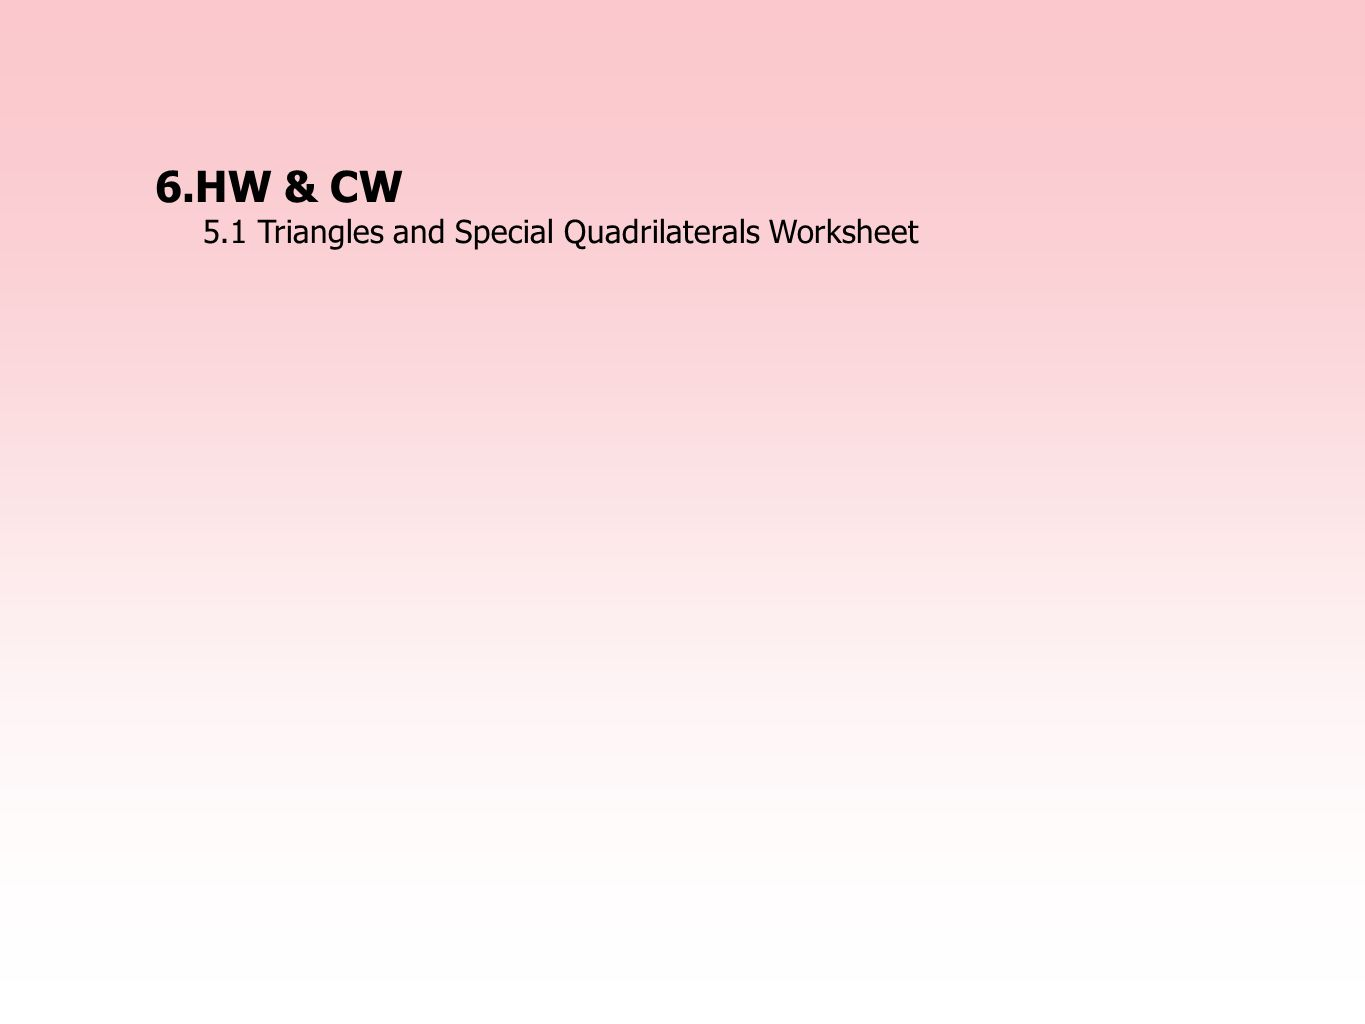 6.HW & CW 5.1 Triangles and Special Quadrilaterals Worksheet